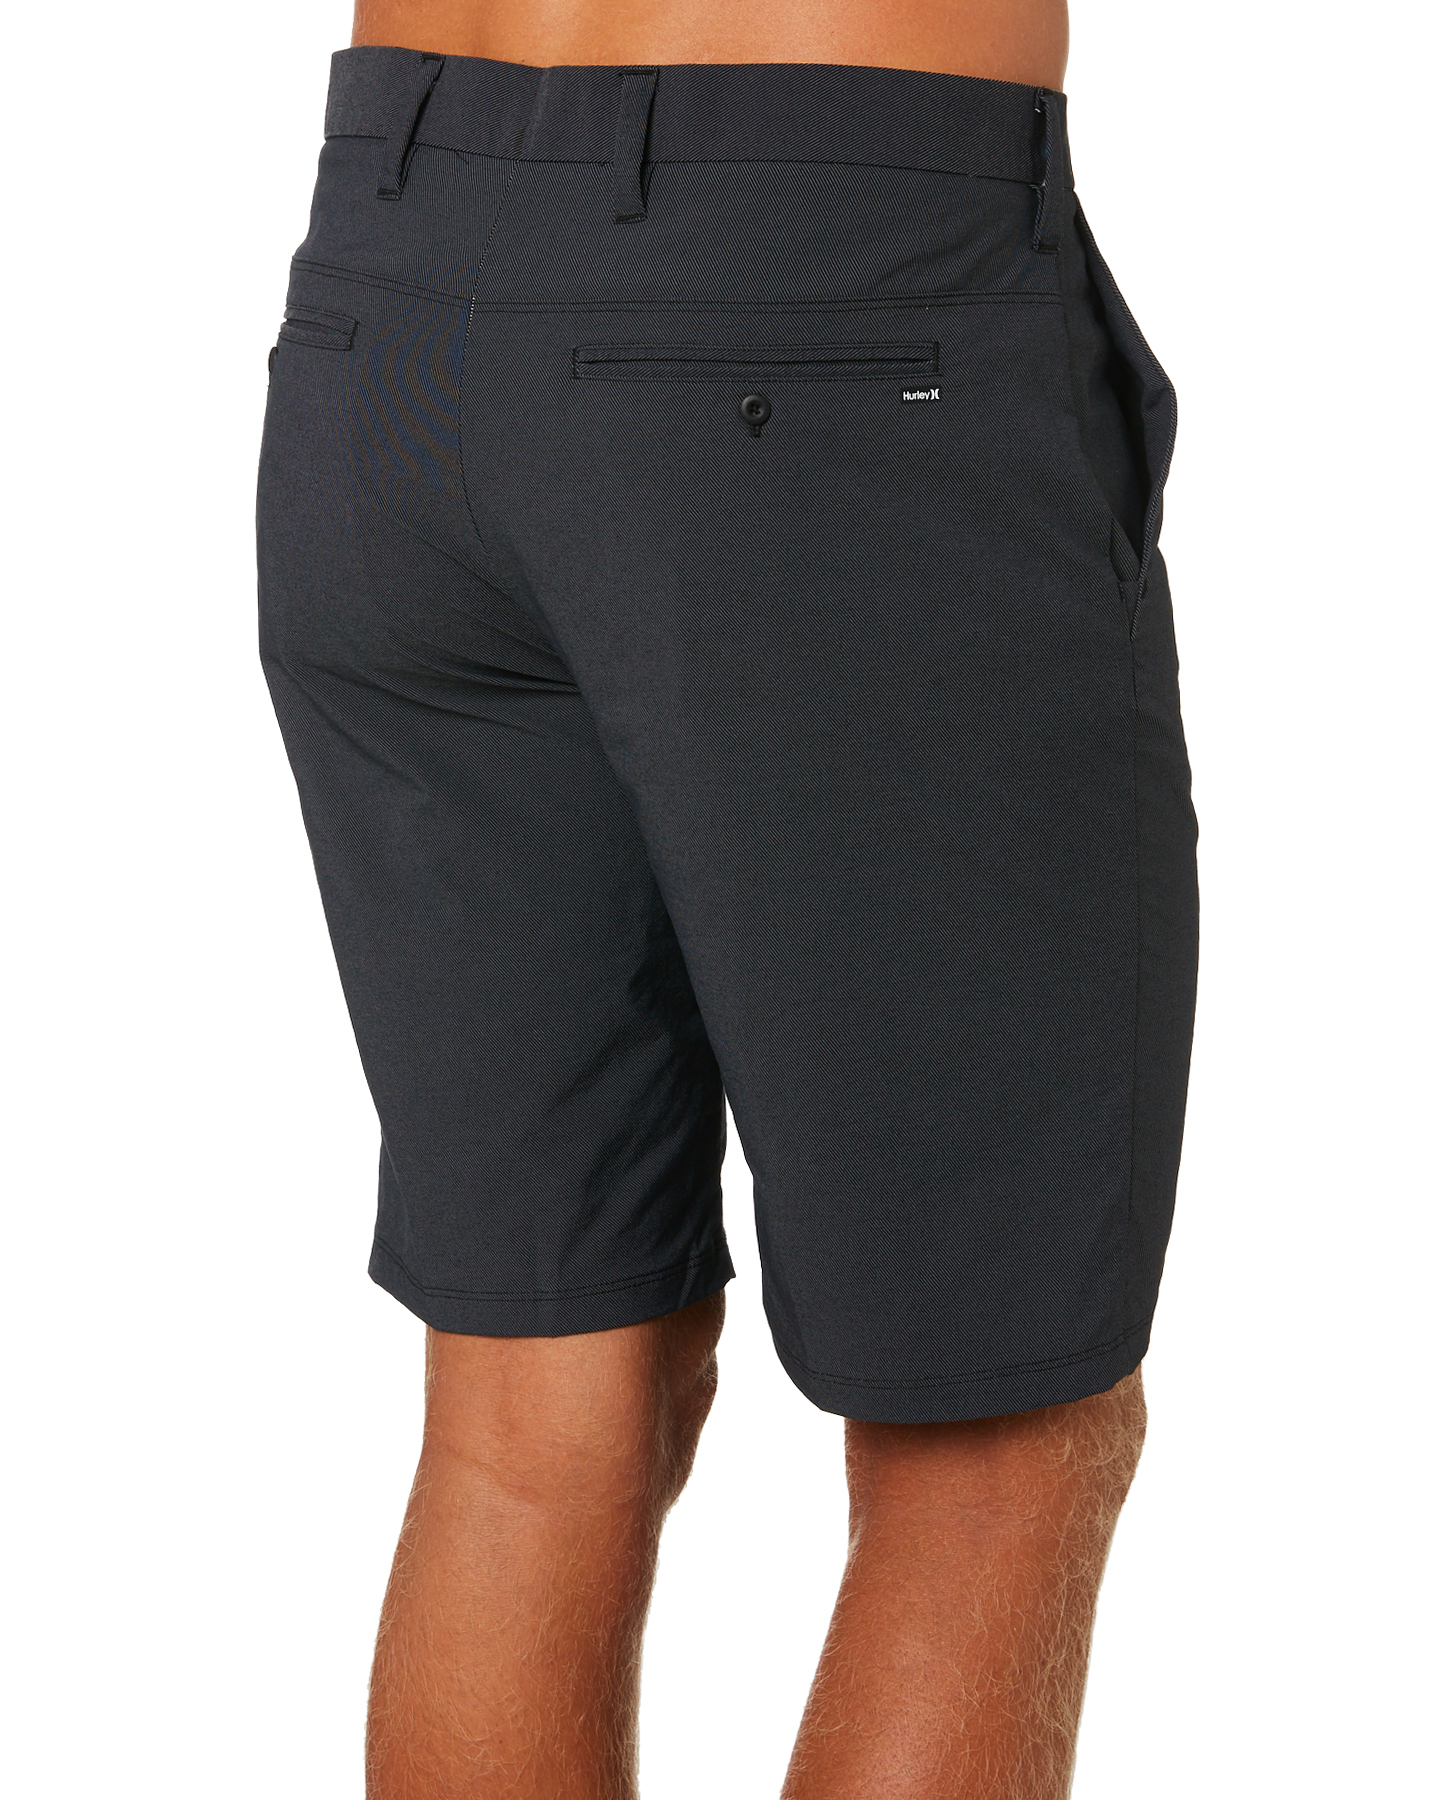 New-Hurley-Men-039-s-Dri-Fit-Chino-Short-21In-Mens-Short-Fitted-Spandex-Grey thumbnail 9